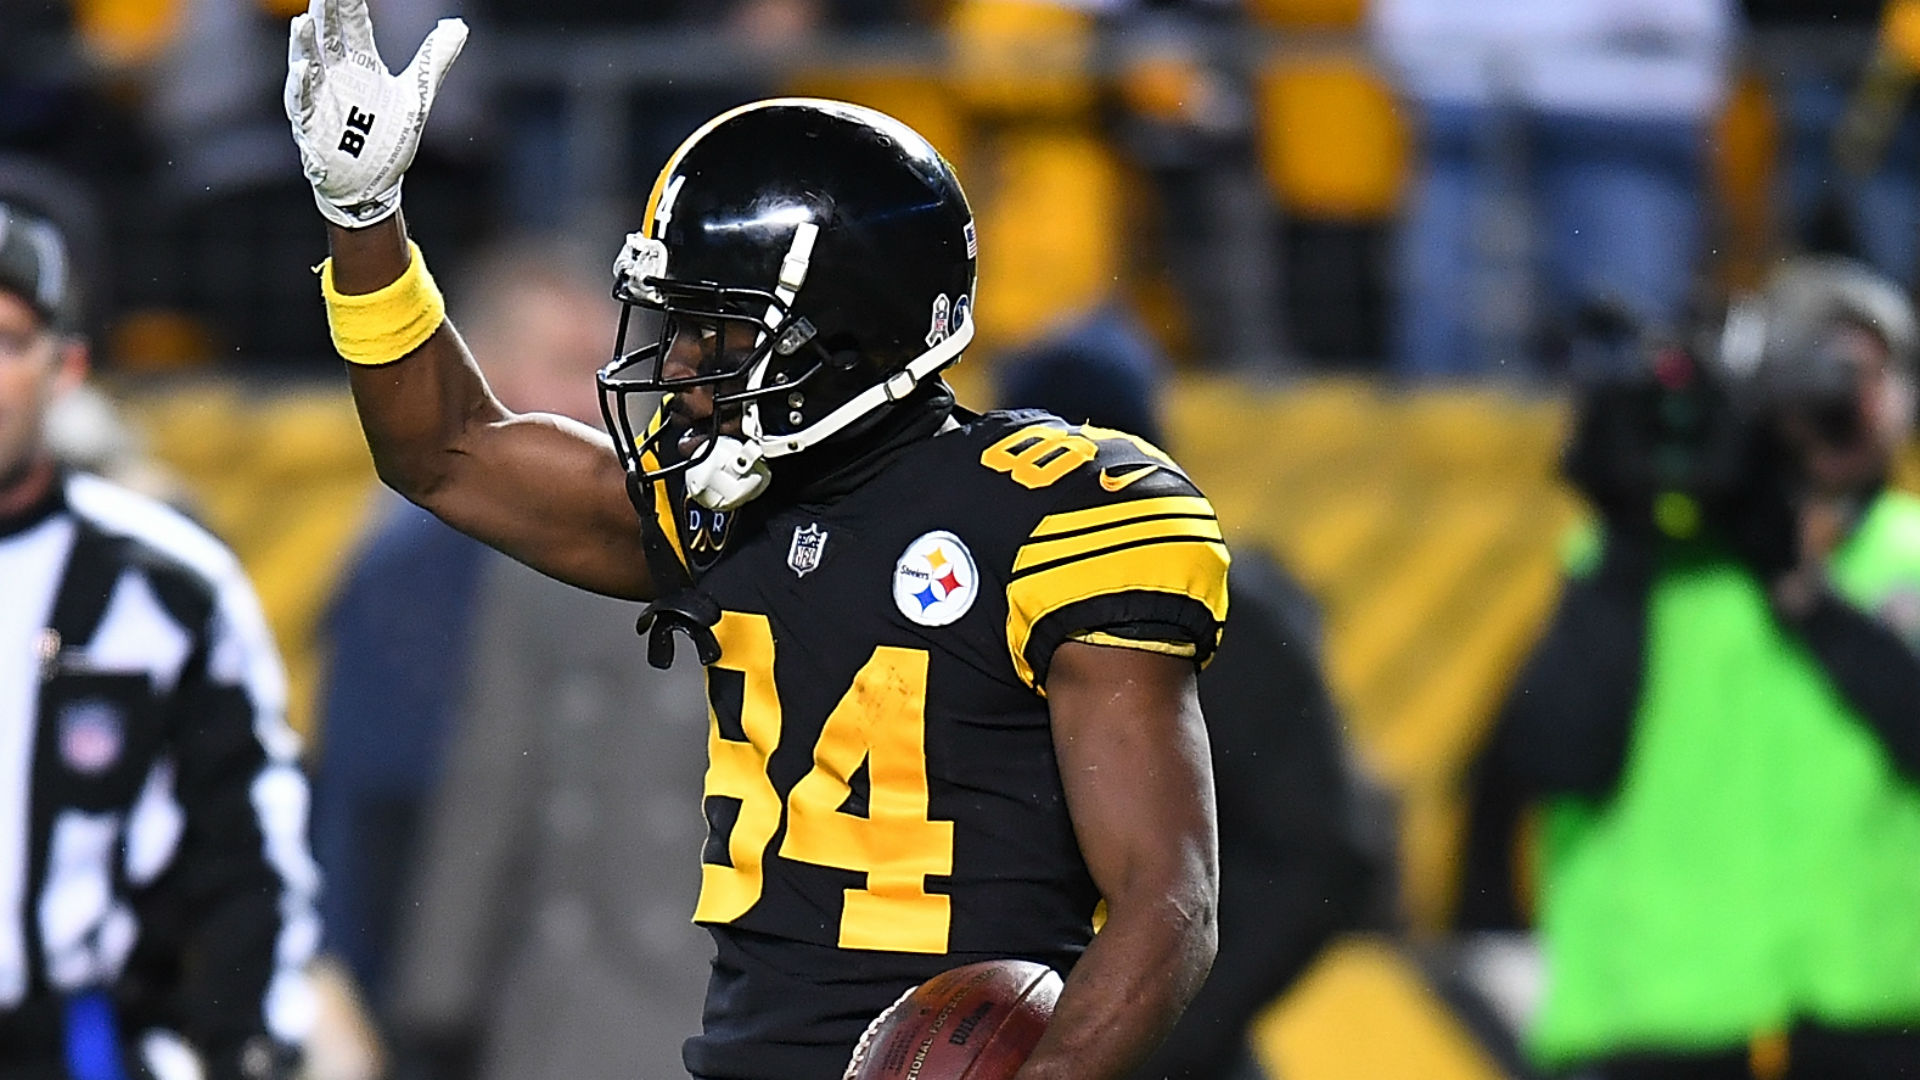 Antonio Brown skipped Monday practice due to 'personal matter'